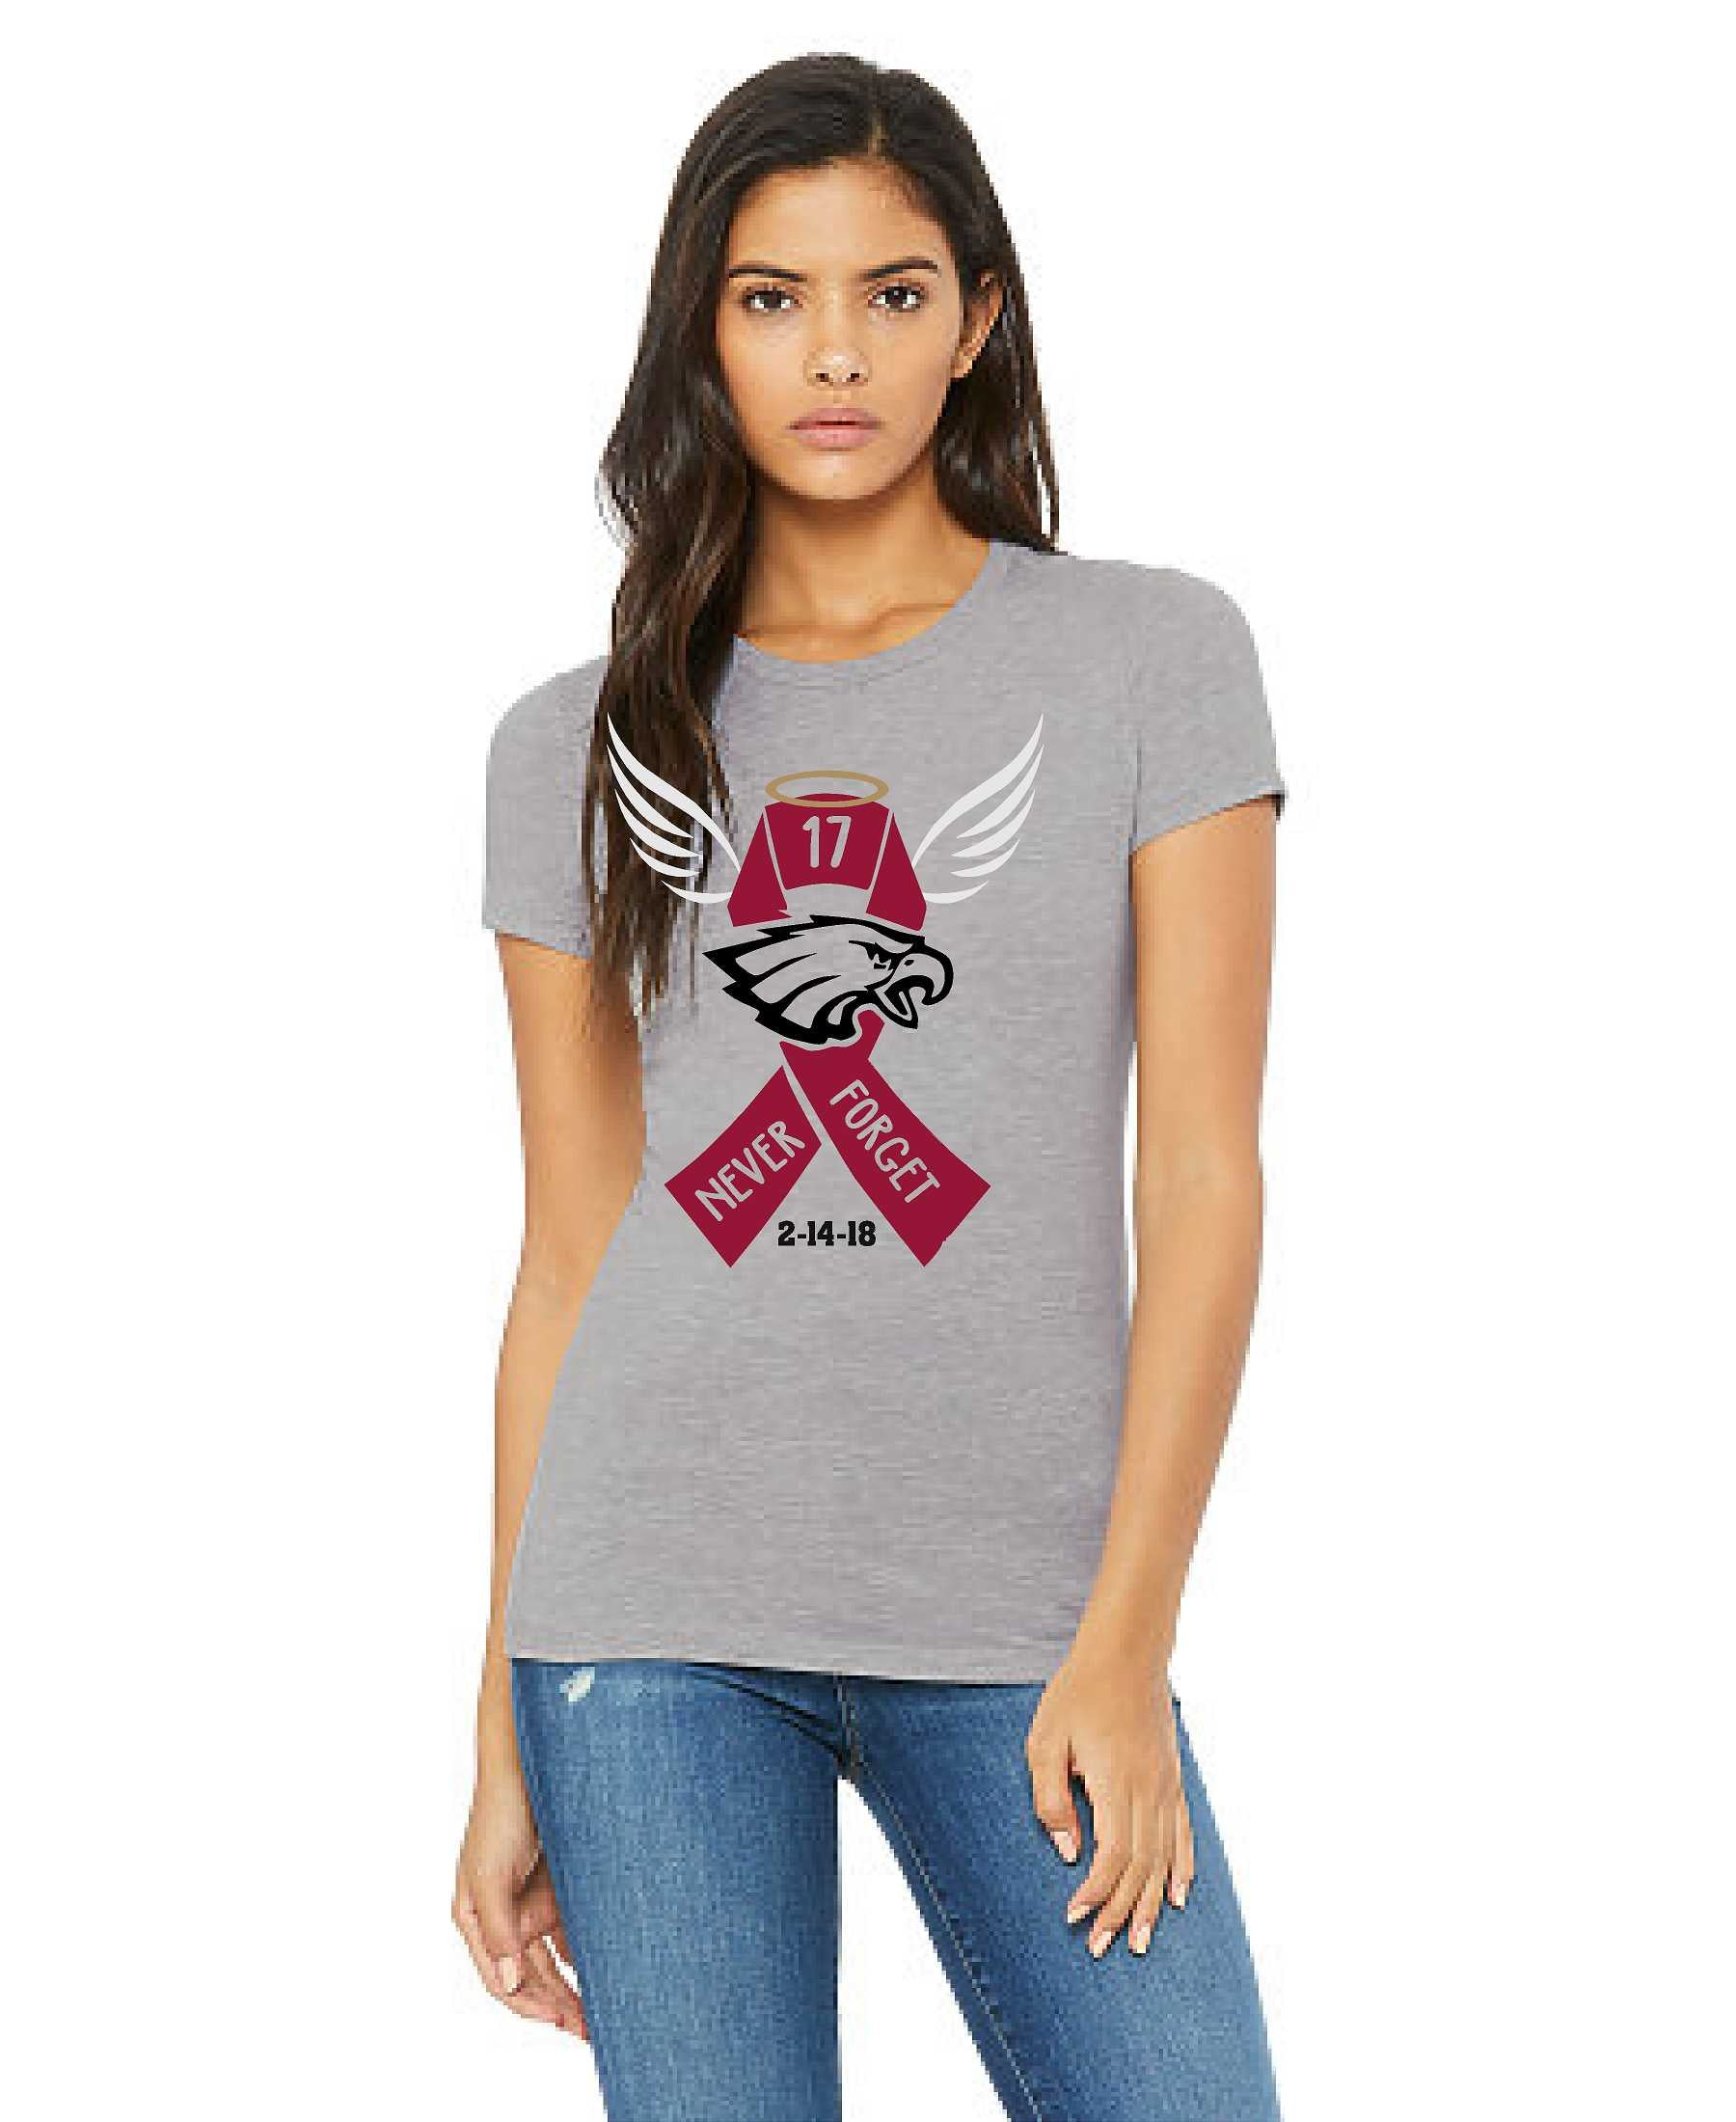 Stoneman Douglas 2nd Anniversary Tee - Athletic Heather Women's